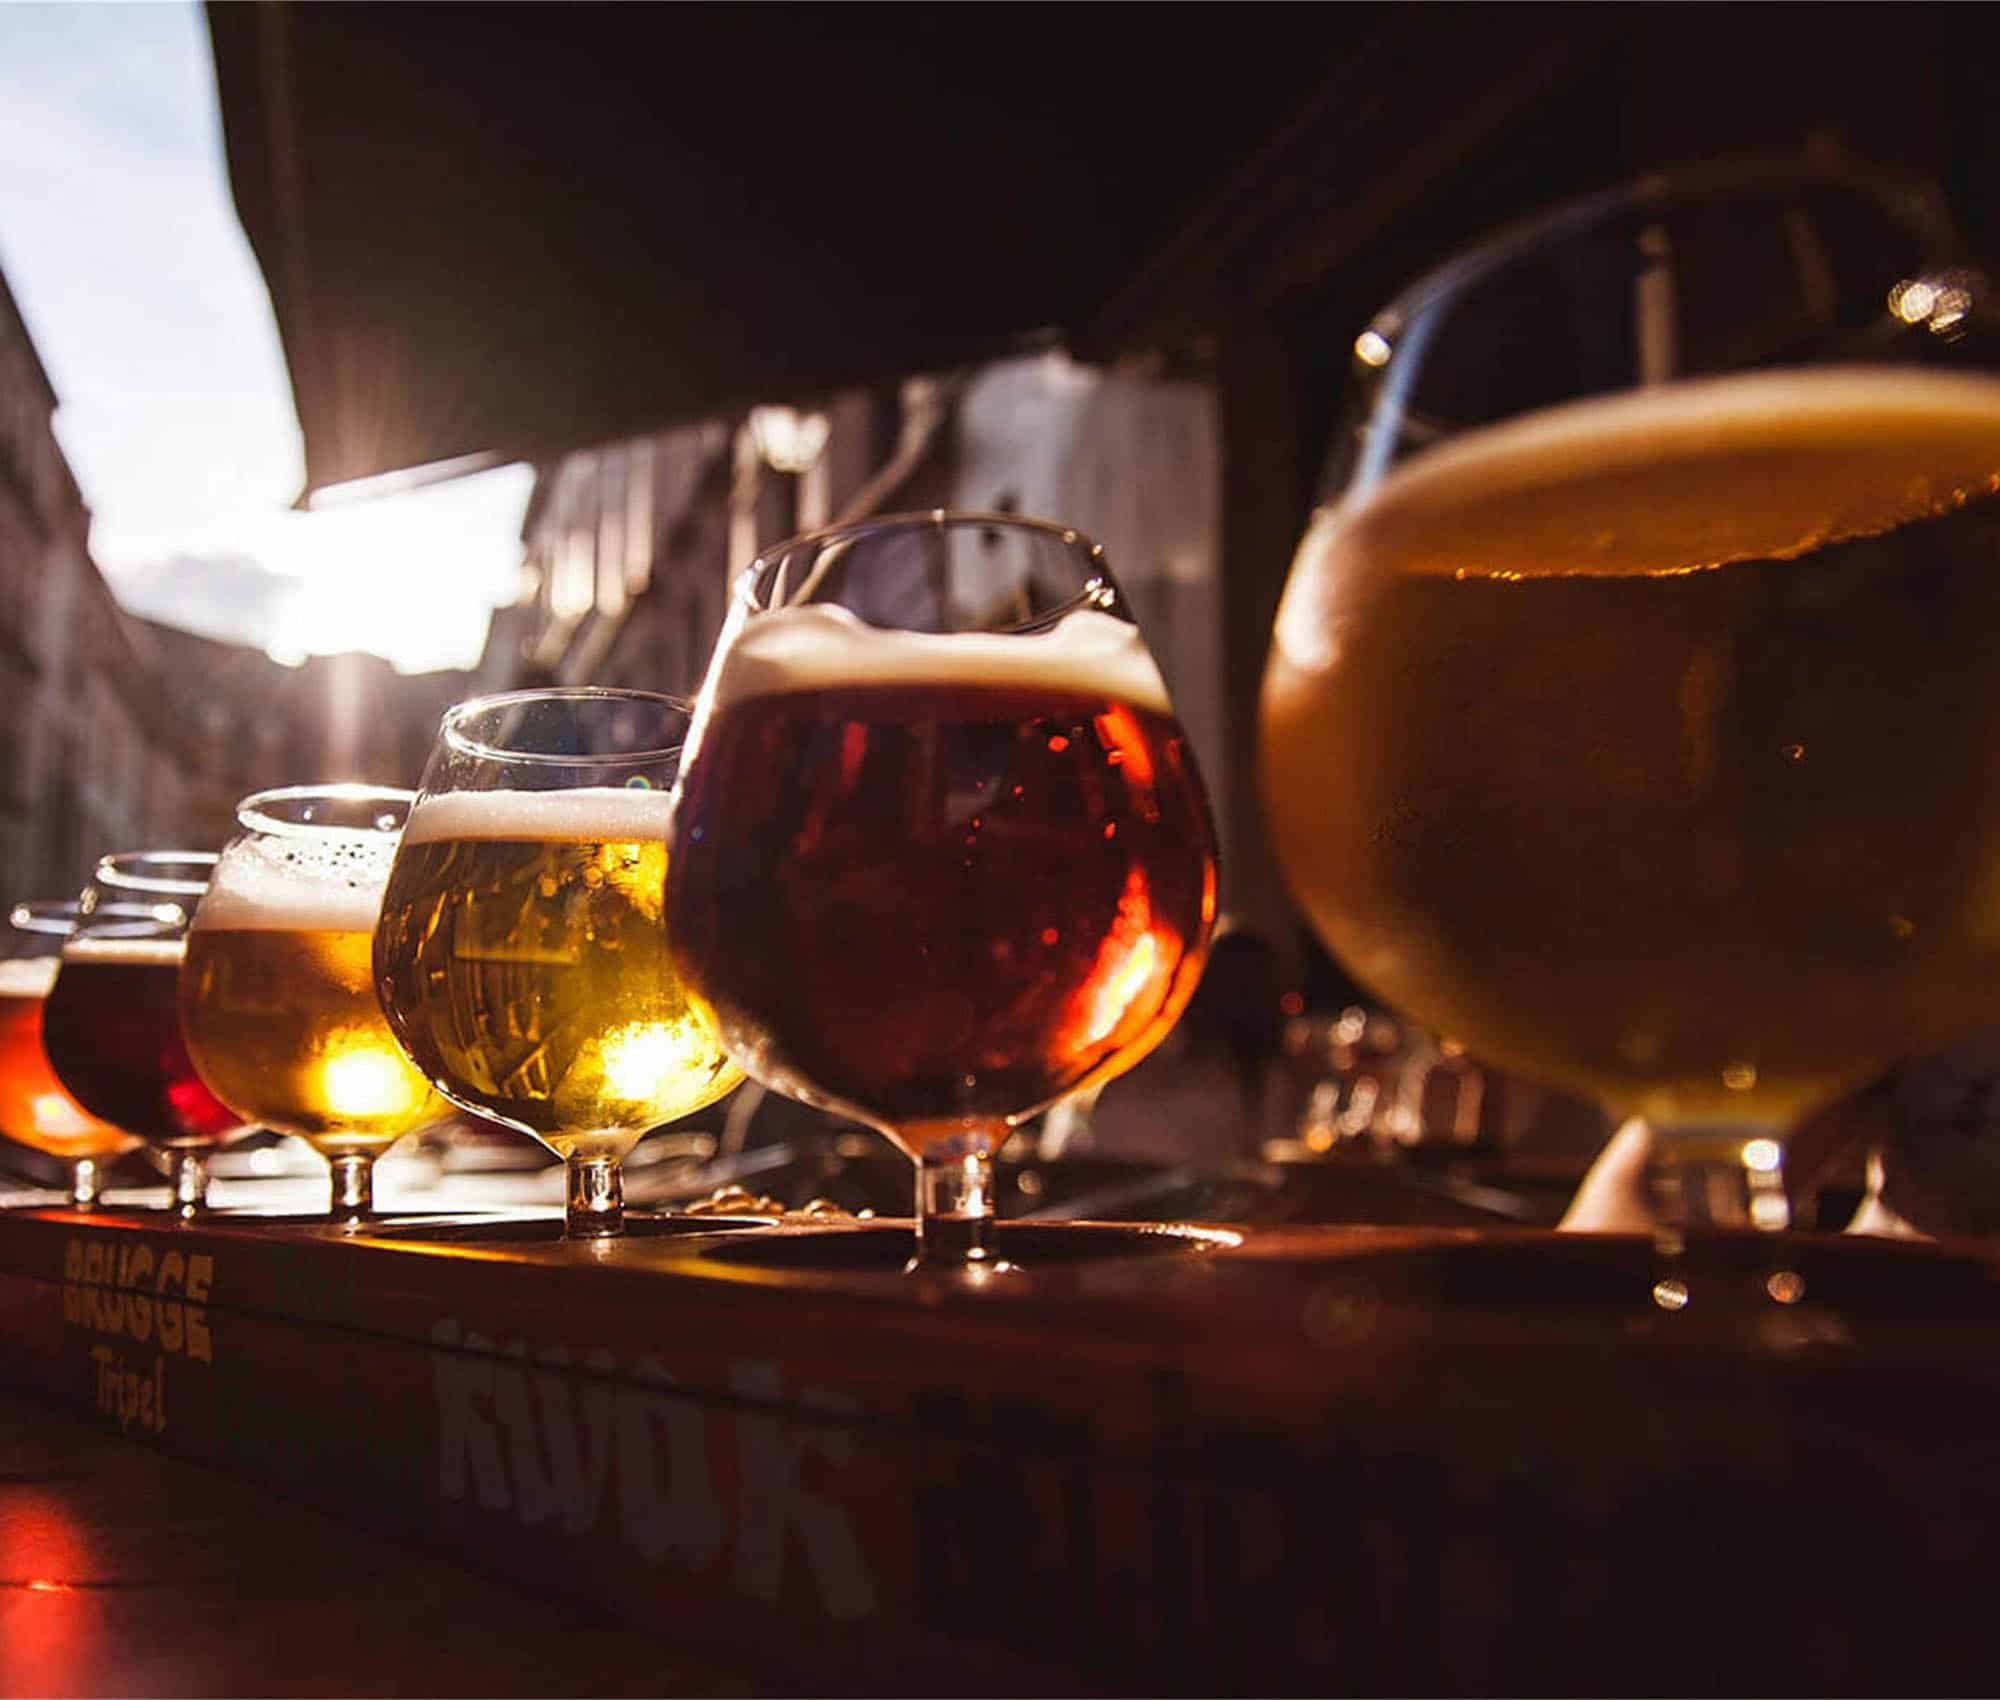 What is the difference between craft beer and industrial